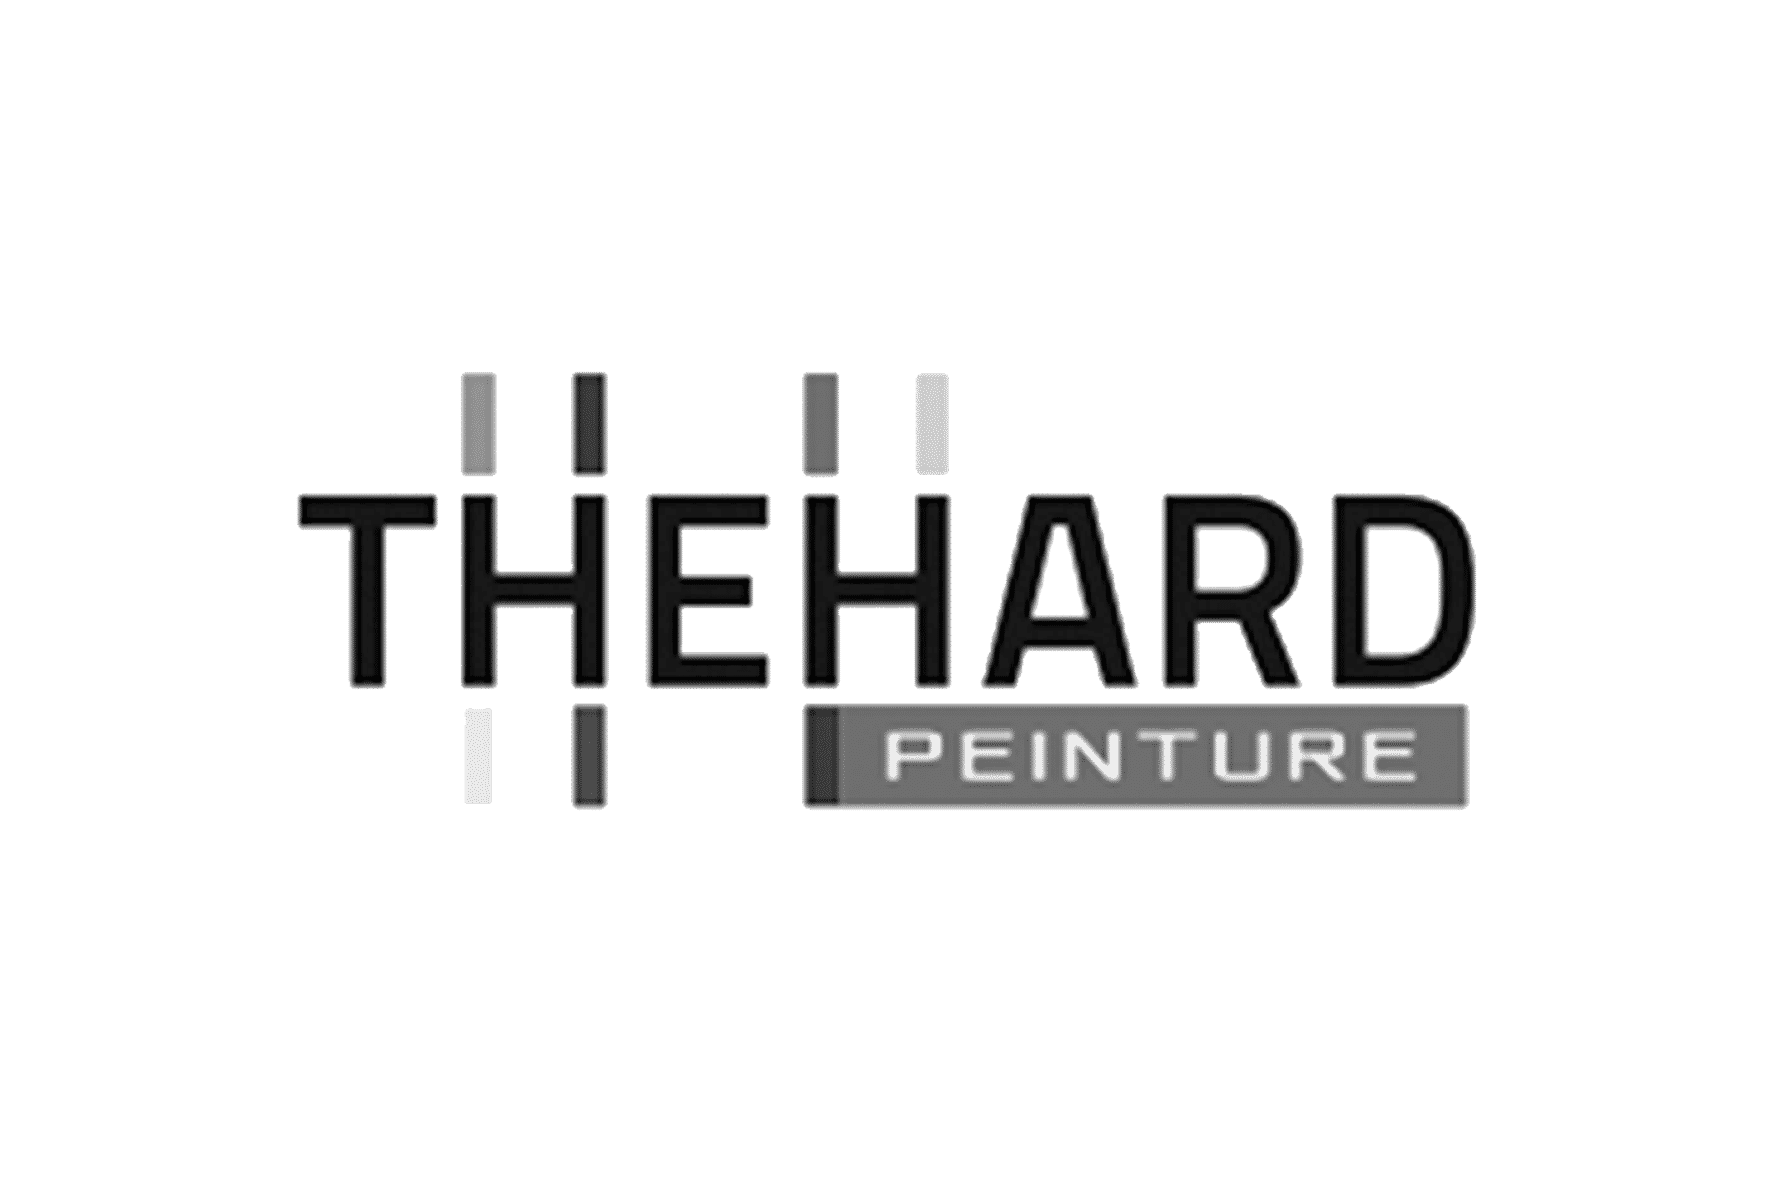 https://doubleve.fr/wp-content/uploads/2019/07/Logo-thehard.png